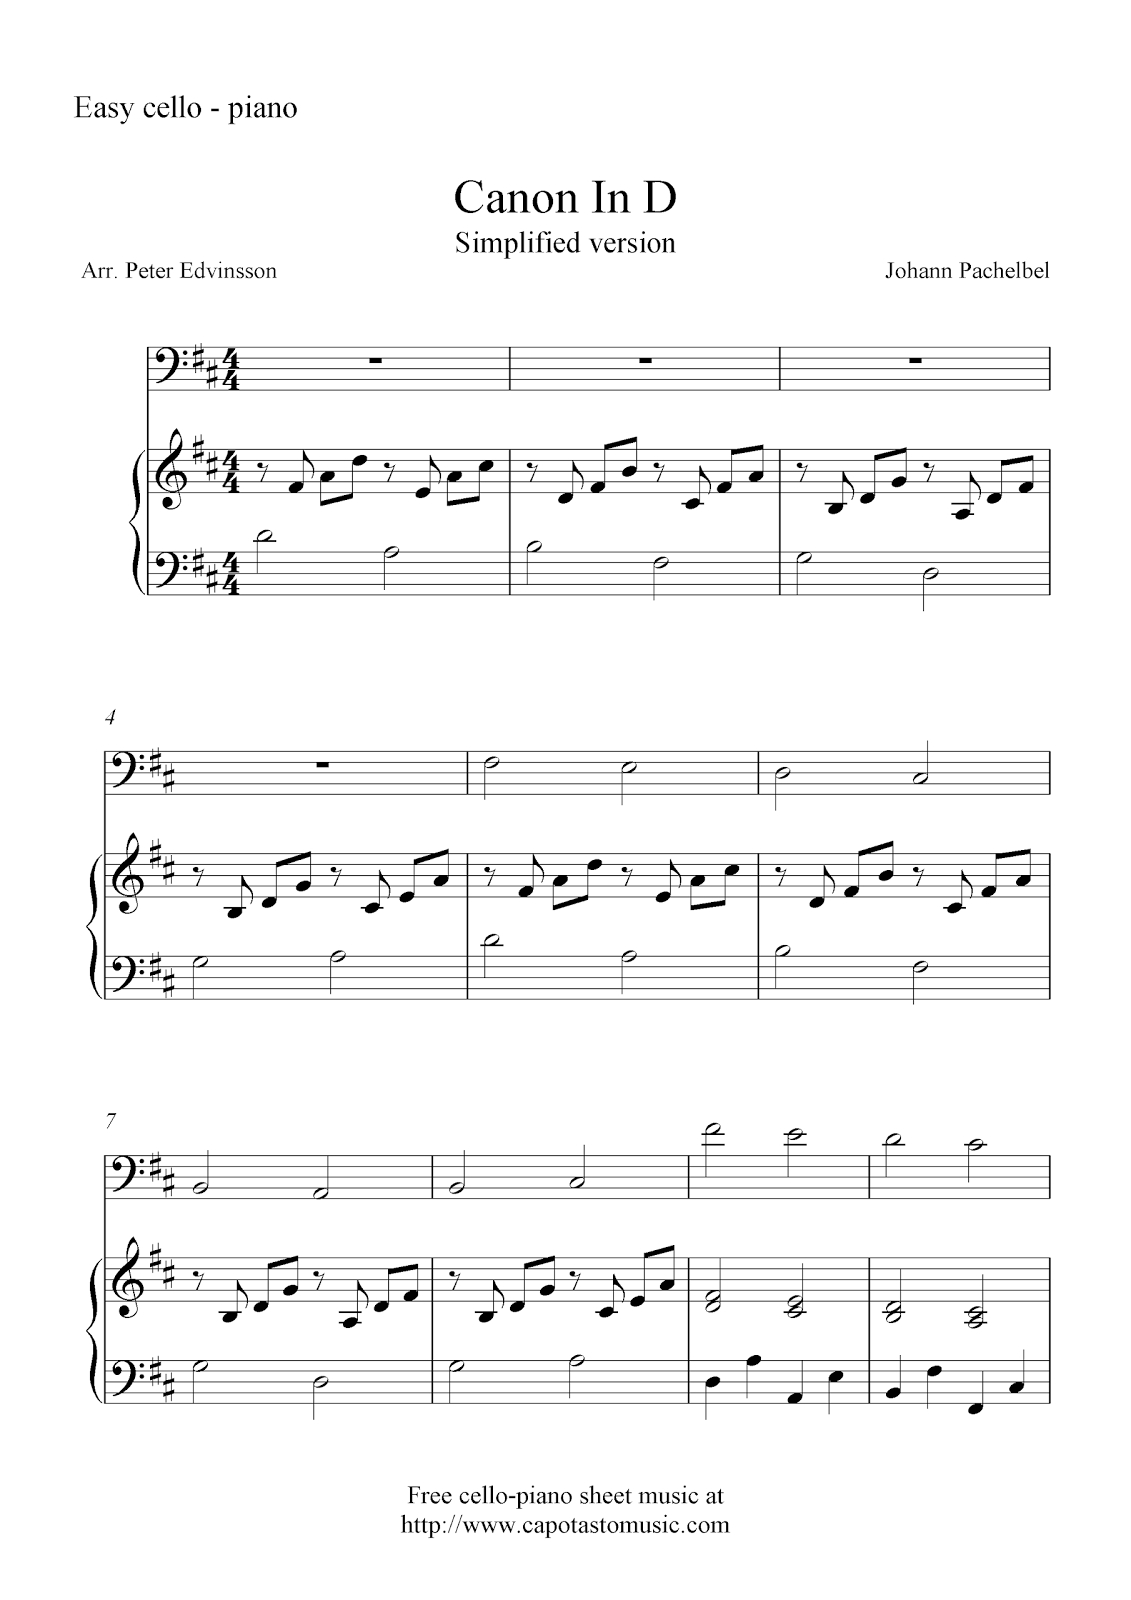 Free Cello And Piano Sheet Music, Canon In D - Canon In D Piano Sheet Music Free Printable